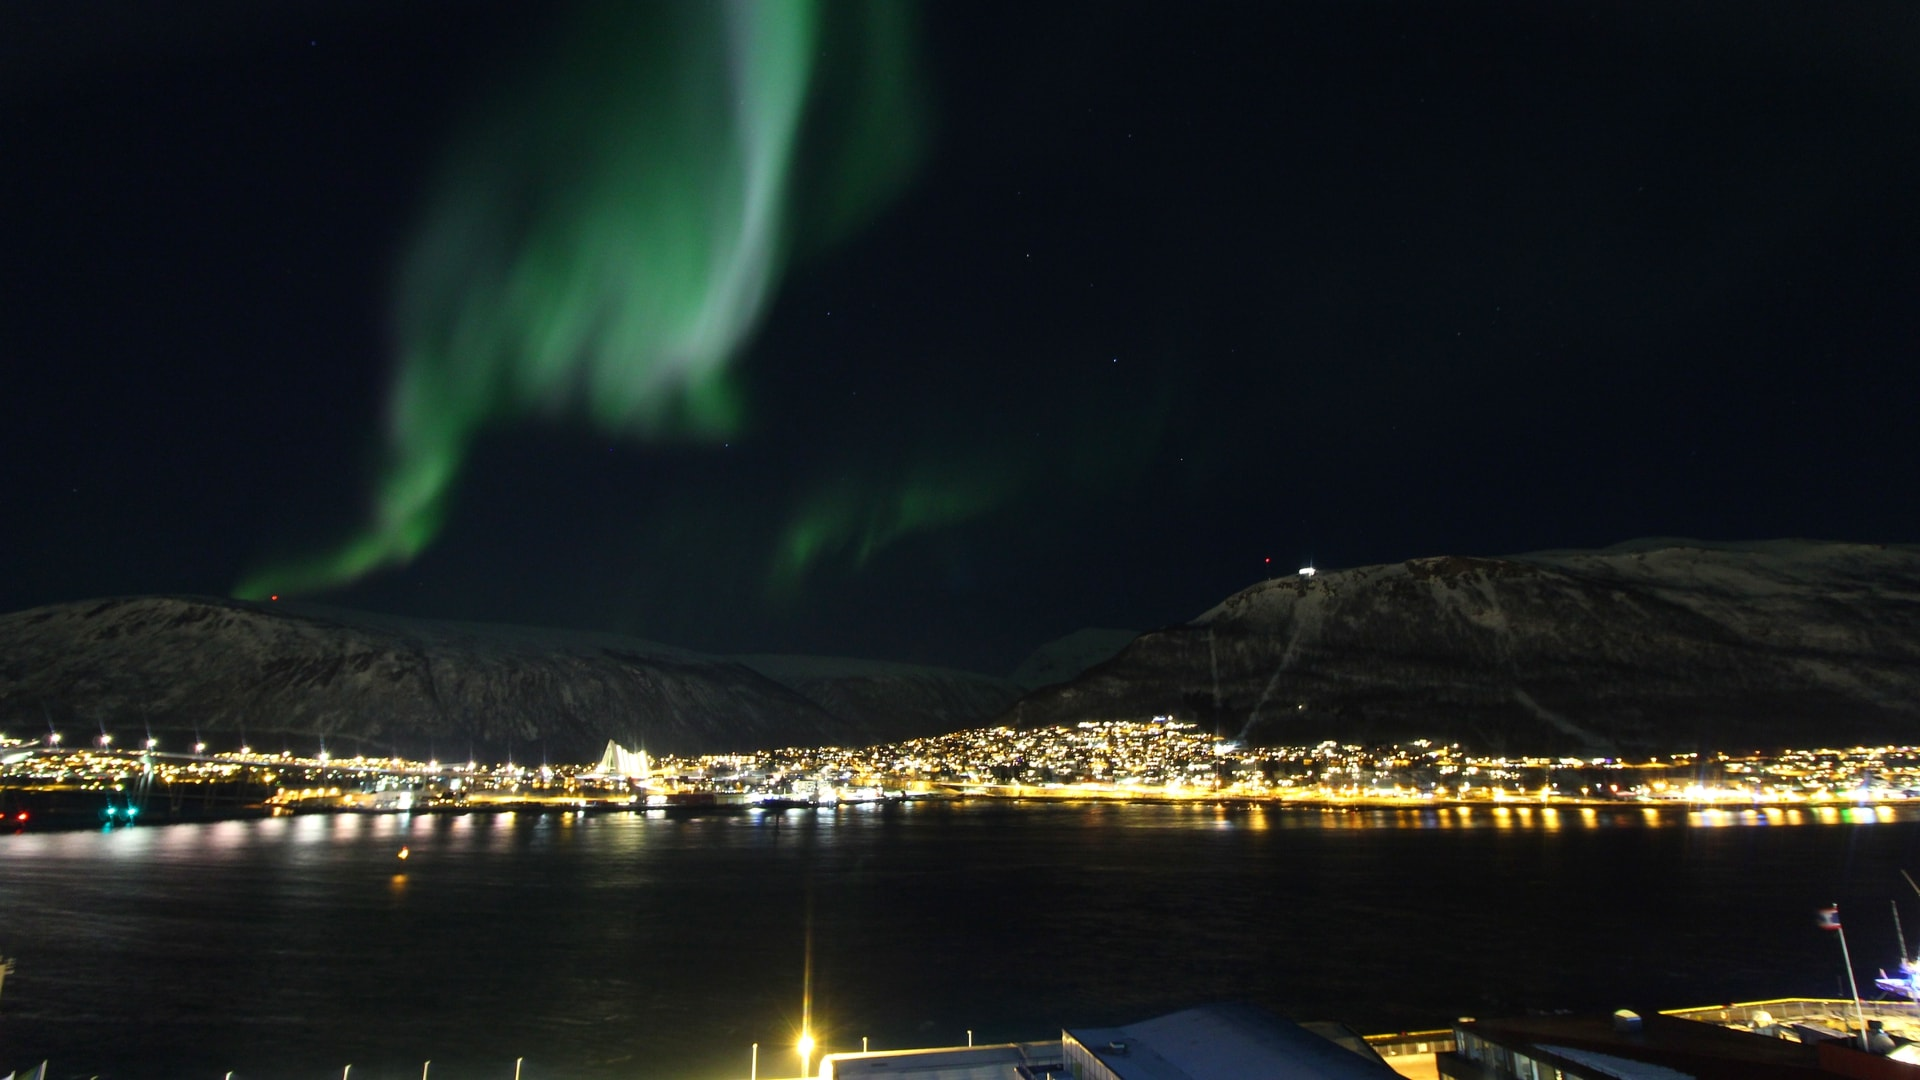 The Aurora captured on the Radisson Blu, Tromso webcam in the Arctic Circle